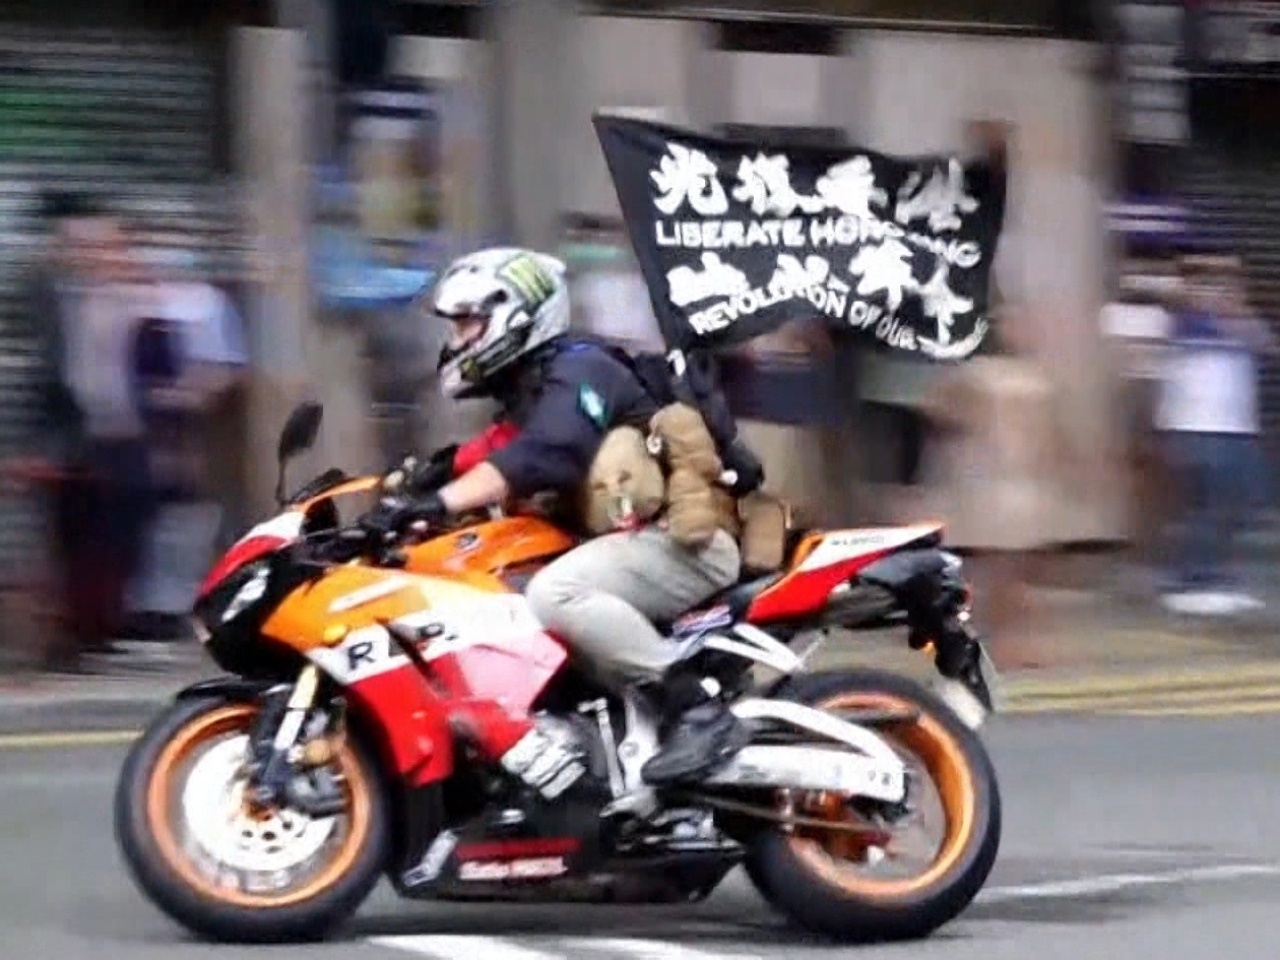 Tong Ying-kit, 24, is charged with inciting secession, terrorism and dangerous driving. Image courtesy of i-Cable